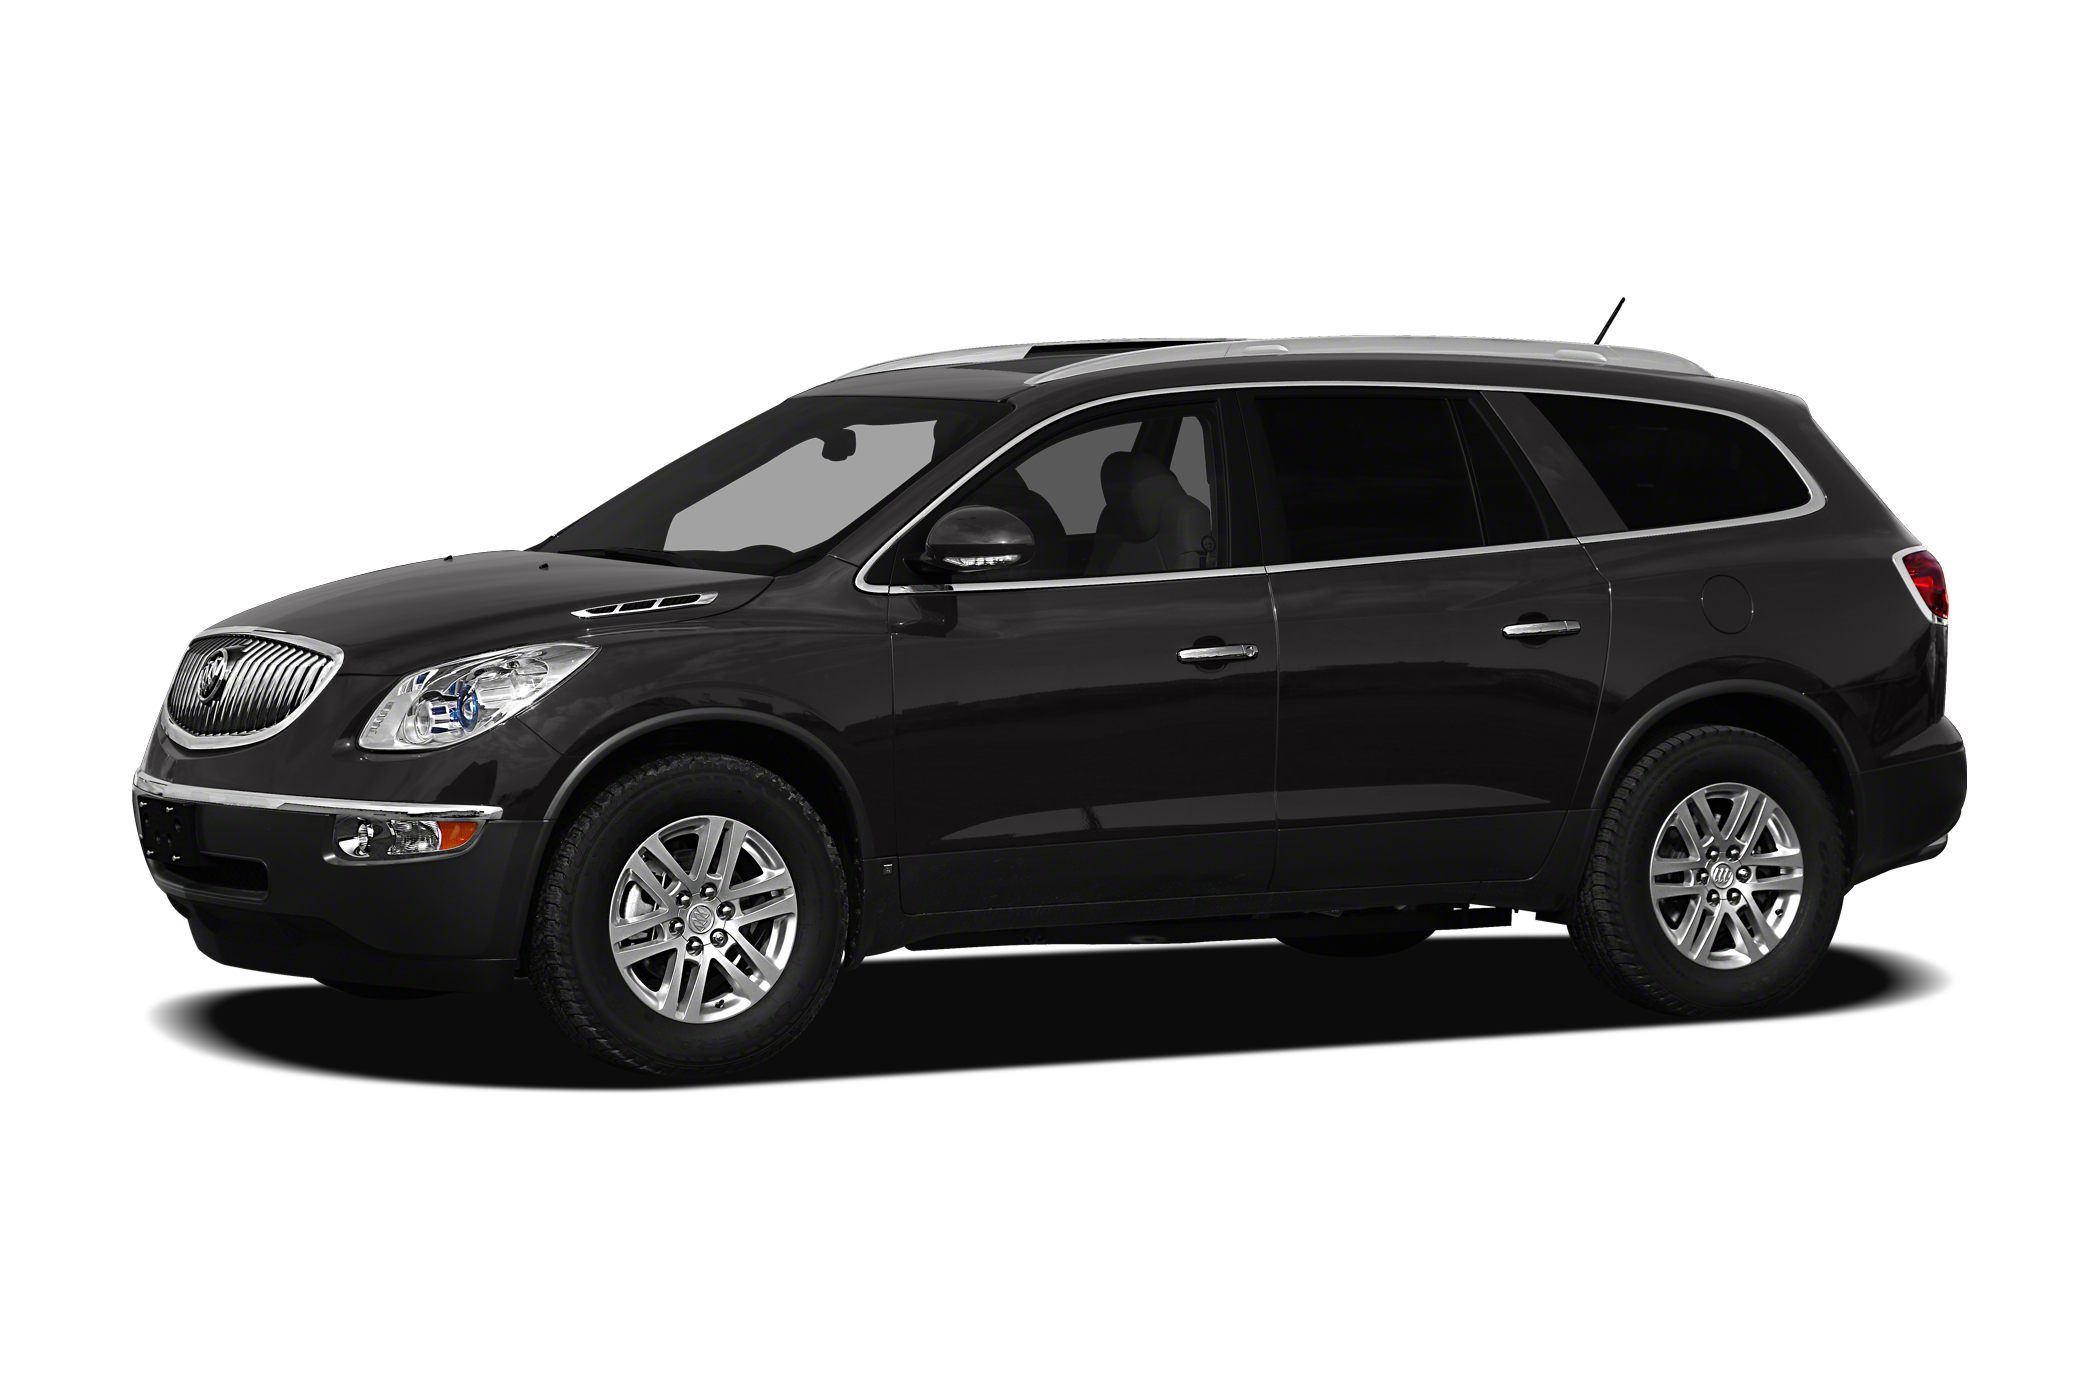 2012 Buick Enclave Premium SUV for sale in Butler for $0 with 44,551 miles